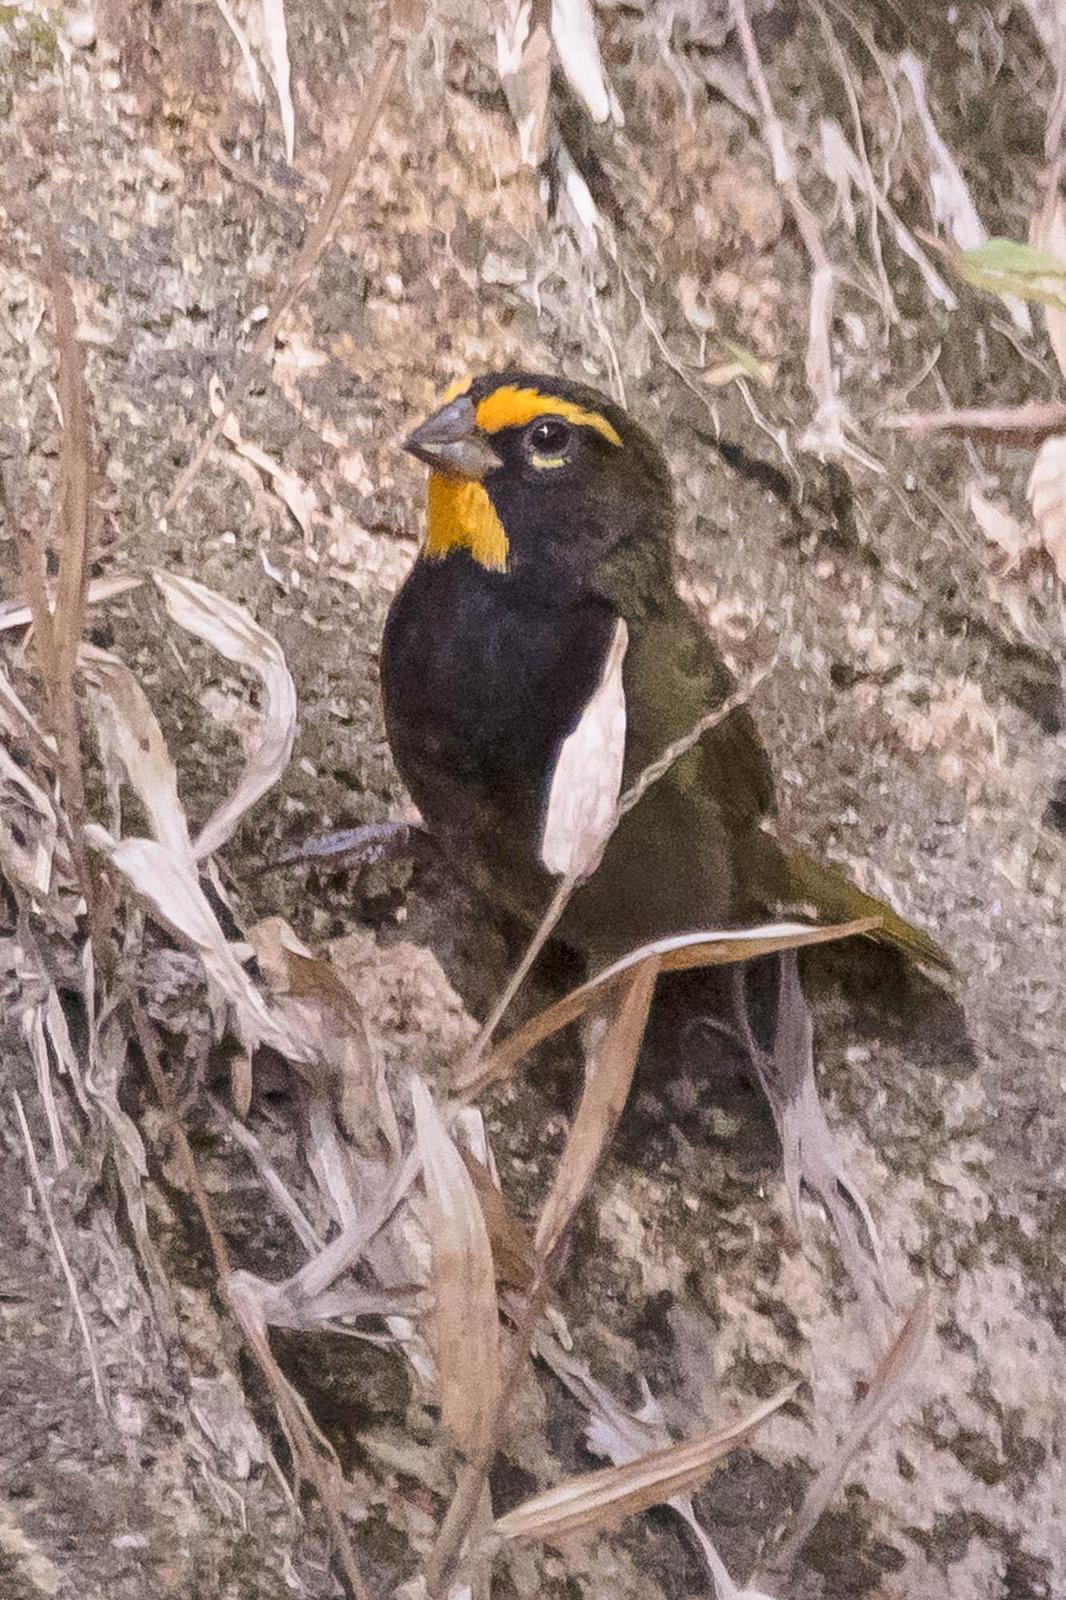 Yellow-faced Grassquit Photo by Denis Rivard